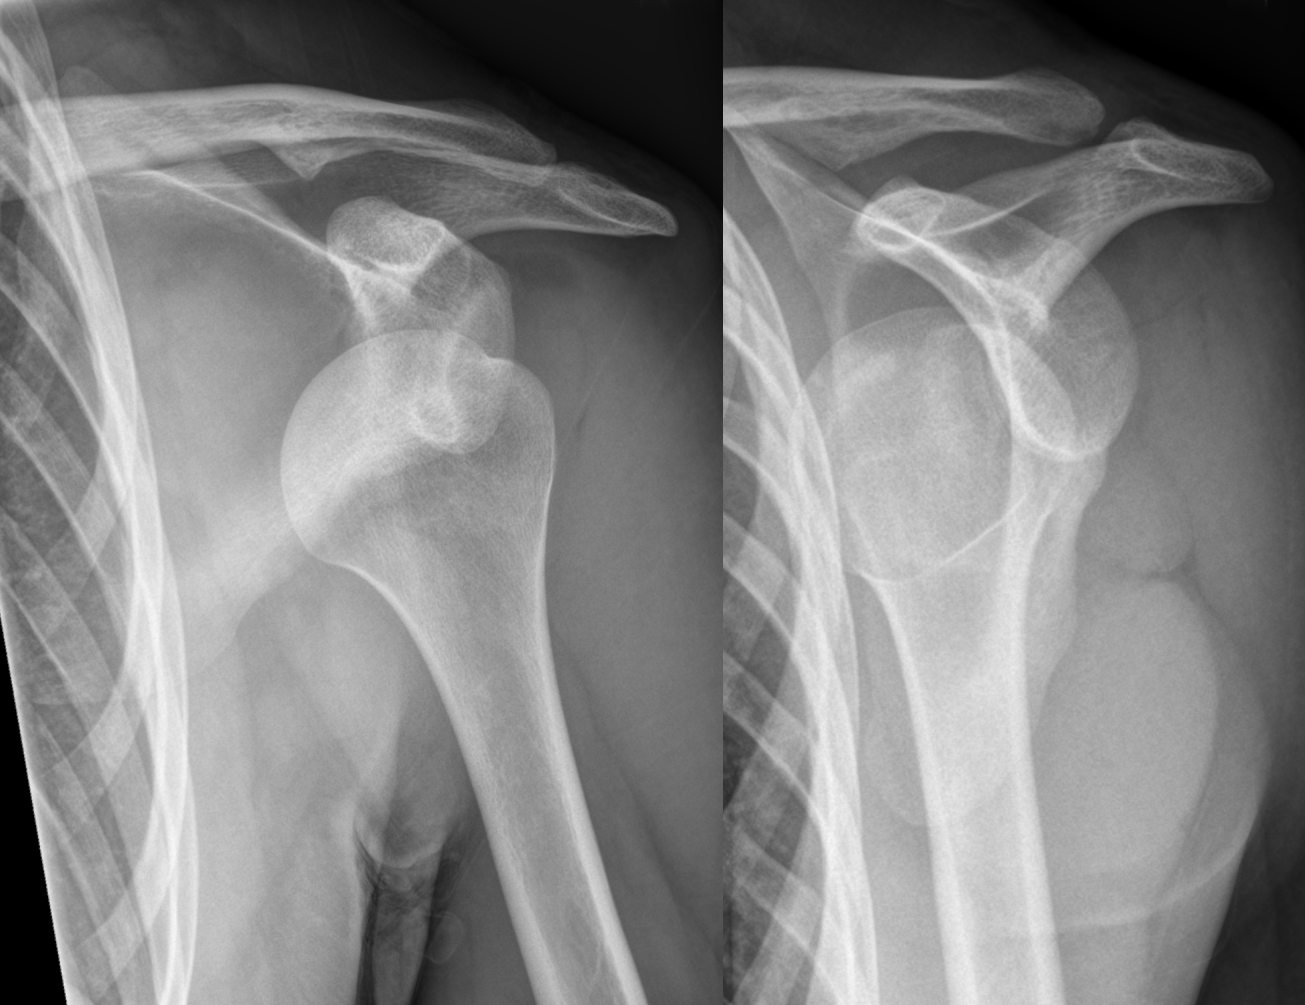 Immobilization in external rotation combined with abduction reduces the risk of recurrence after primary anterior shoulder dislocation